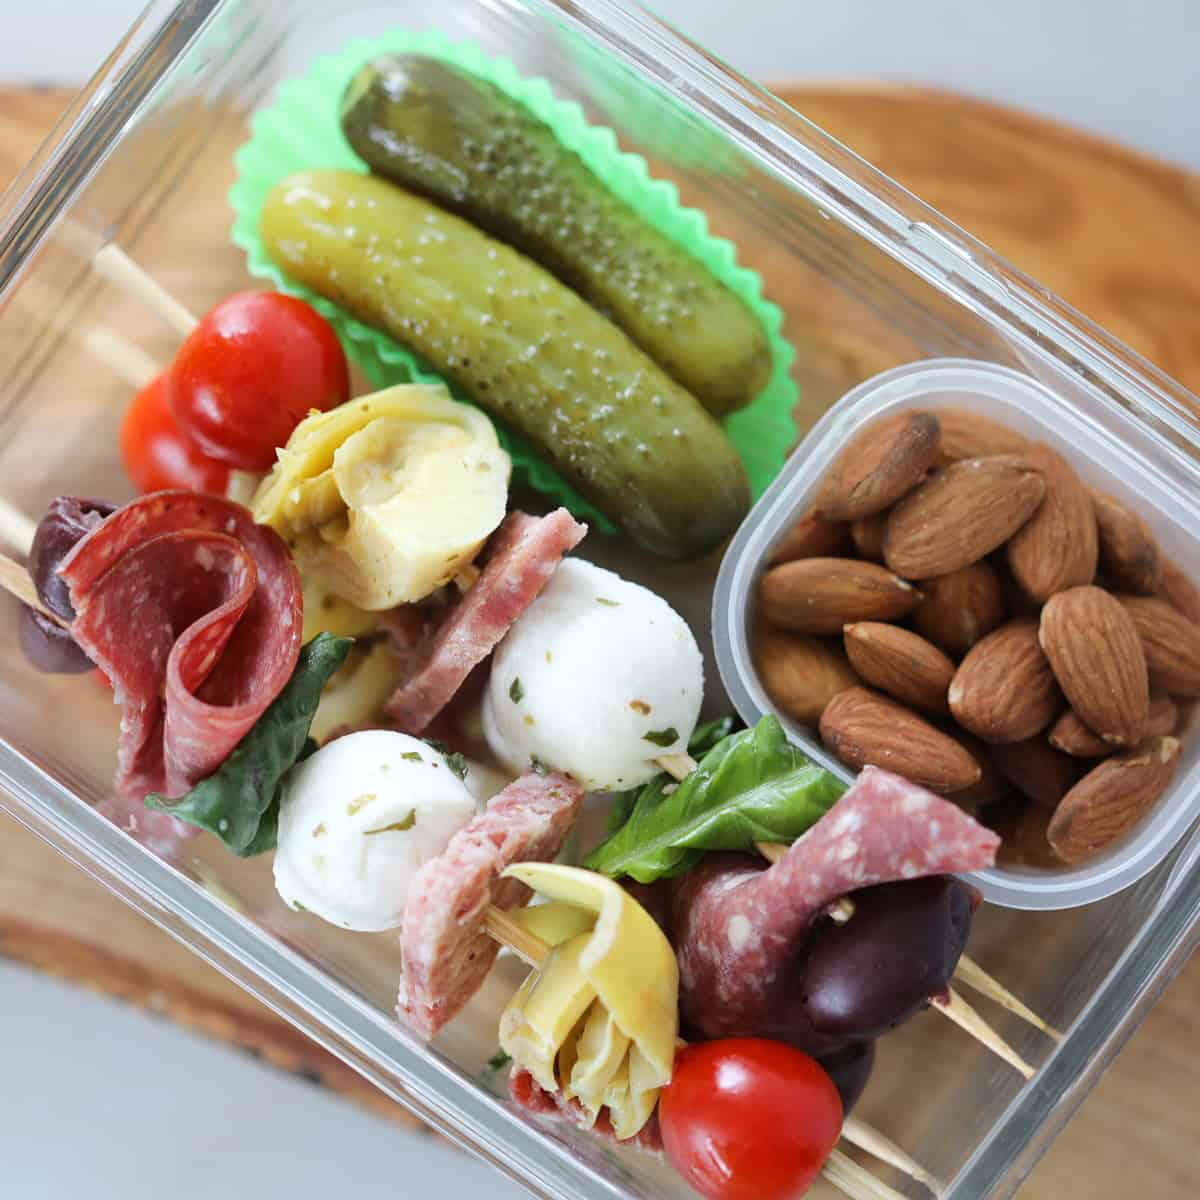 the antipasto skewers keto recipe makes a great low carb lunch, shown in a meal prep conntainer with nuts and pickles